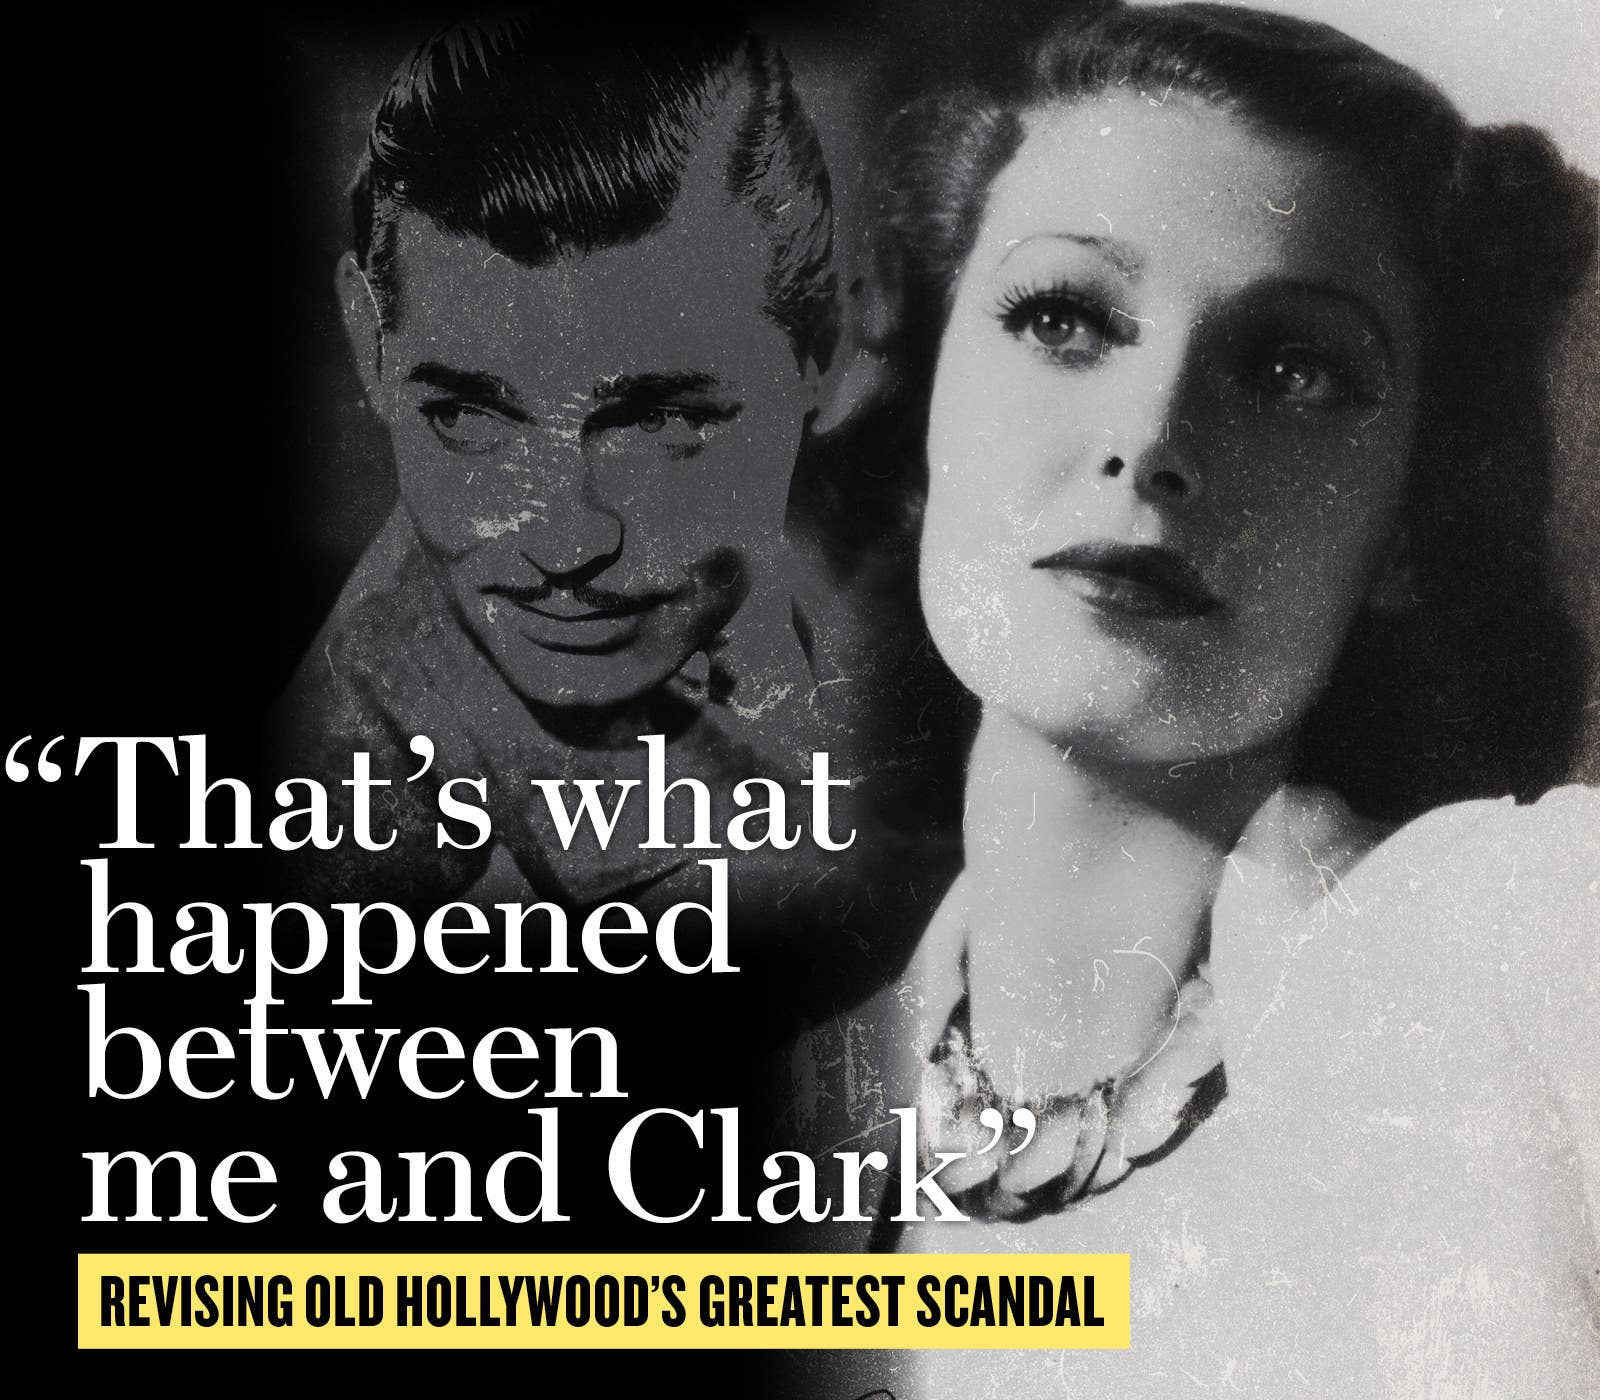 clark gable accused of raping co star